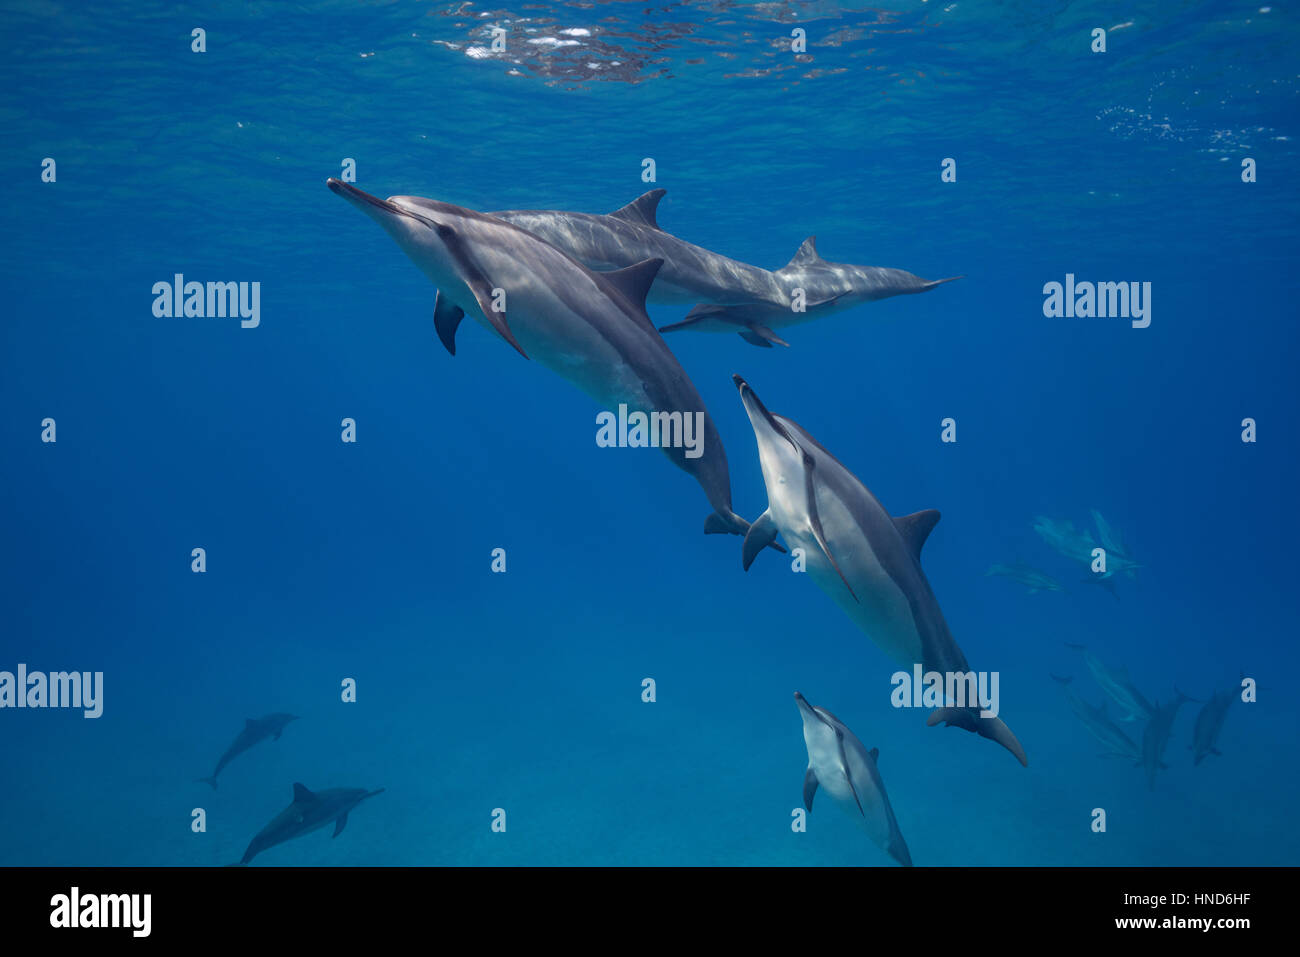 Hawaiian spinner dolphins or Gray's spinner dolphin, Stenella longirostris, socializing; one dolphin with scissor - Stock Image